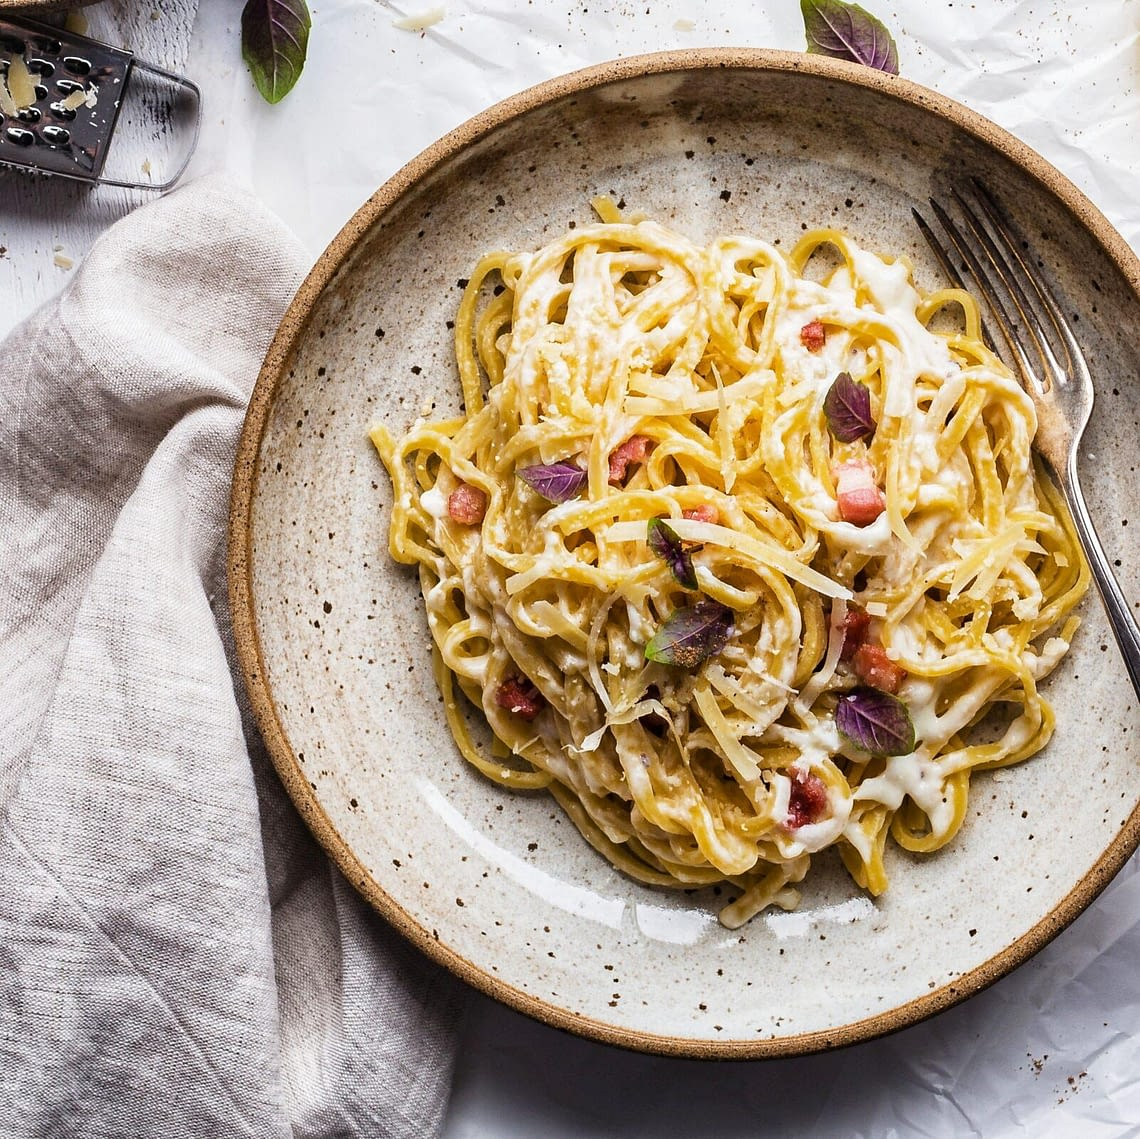 basic carbonara recipe for easy weeknight dinners